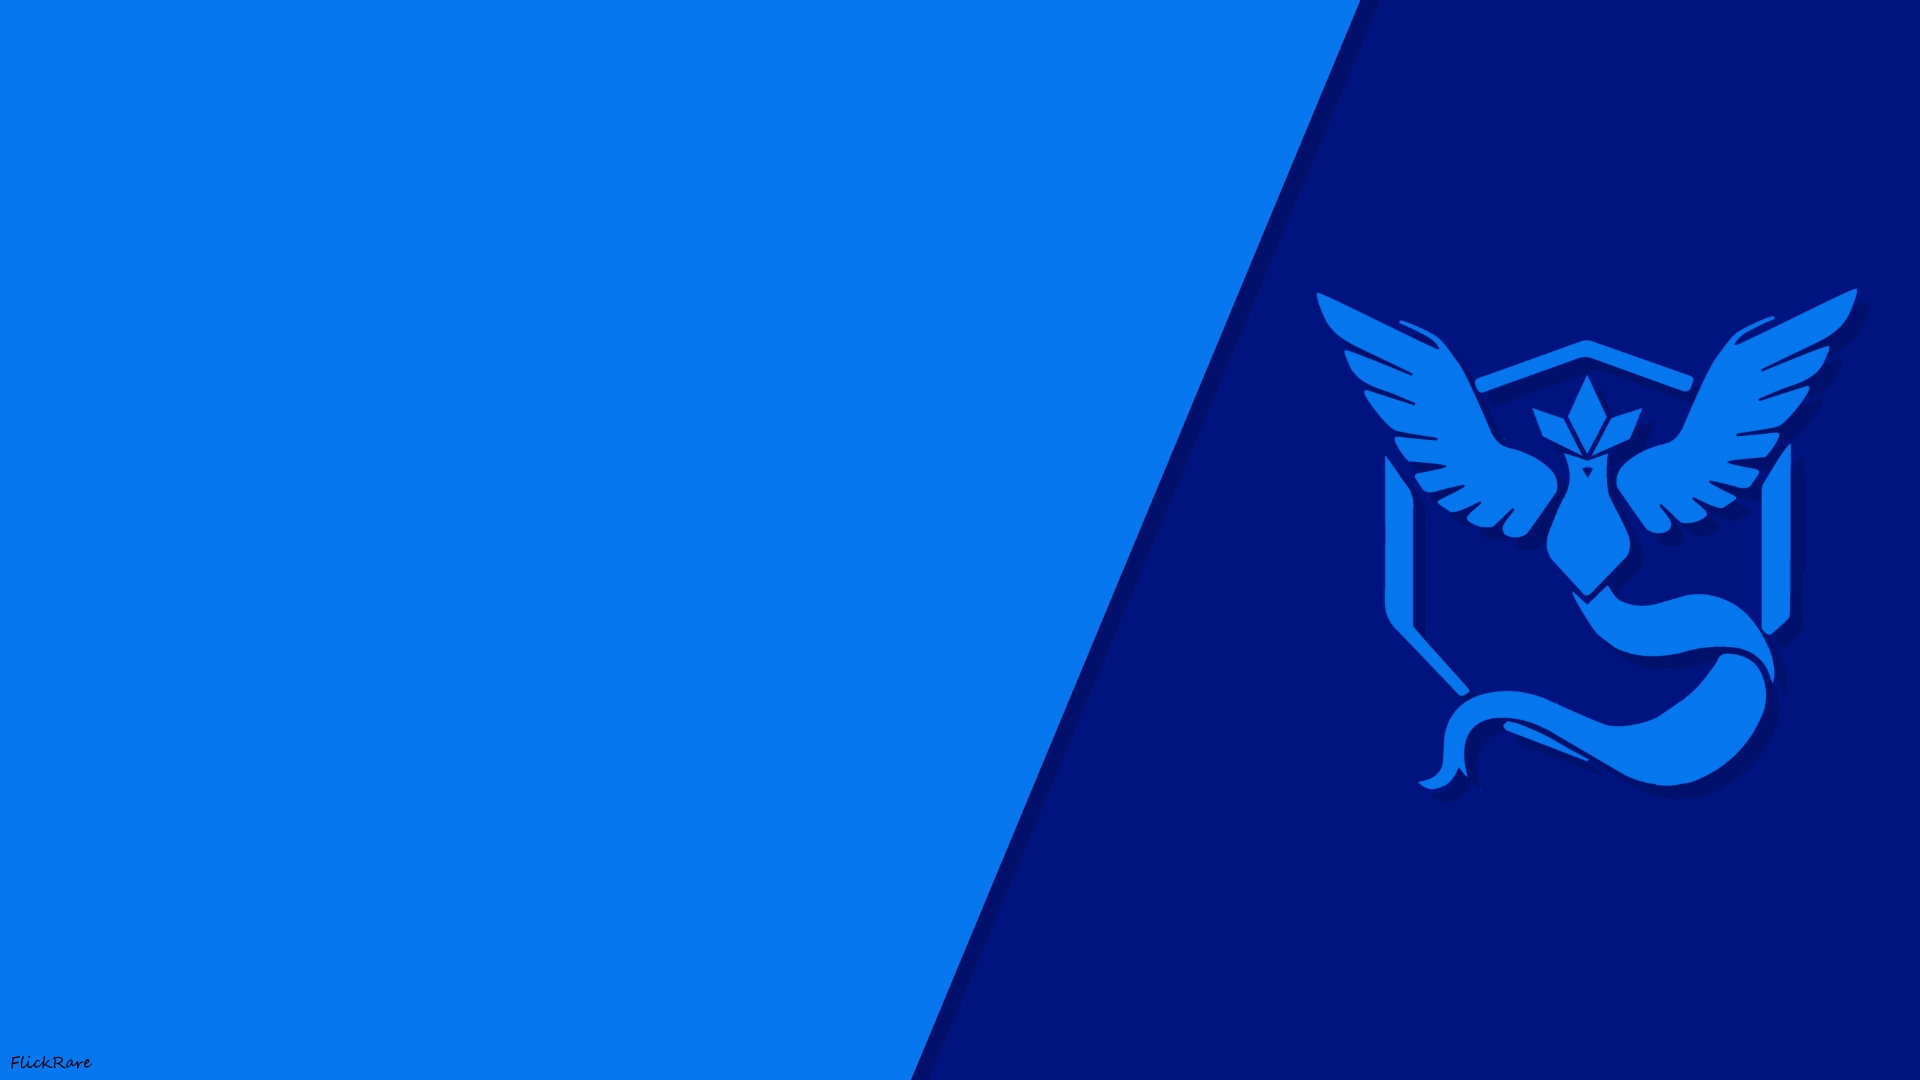 Pokemon Go Simple Team Mystic Wallpaper By Flickrare On Deviantart